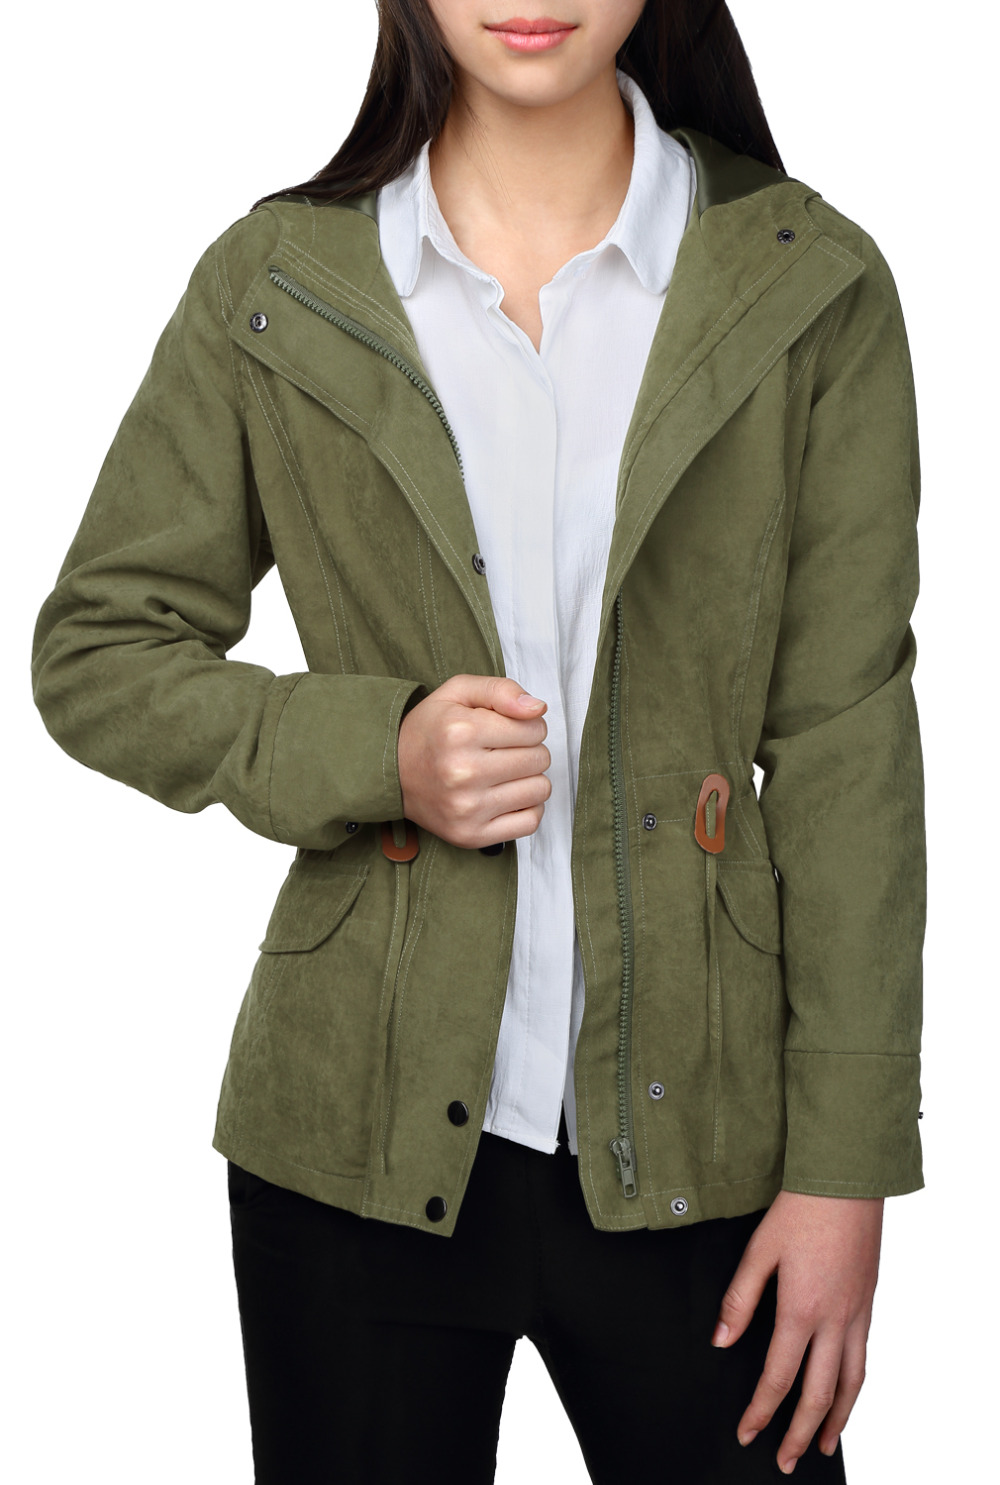 Shop for womens cargo jacket olive online at Target. Free shipping on purchases over $35 and save 5% every day with your Target REDcard.